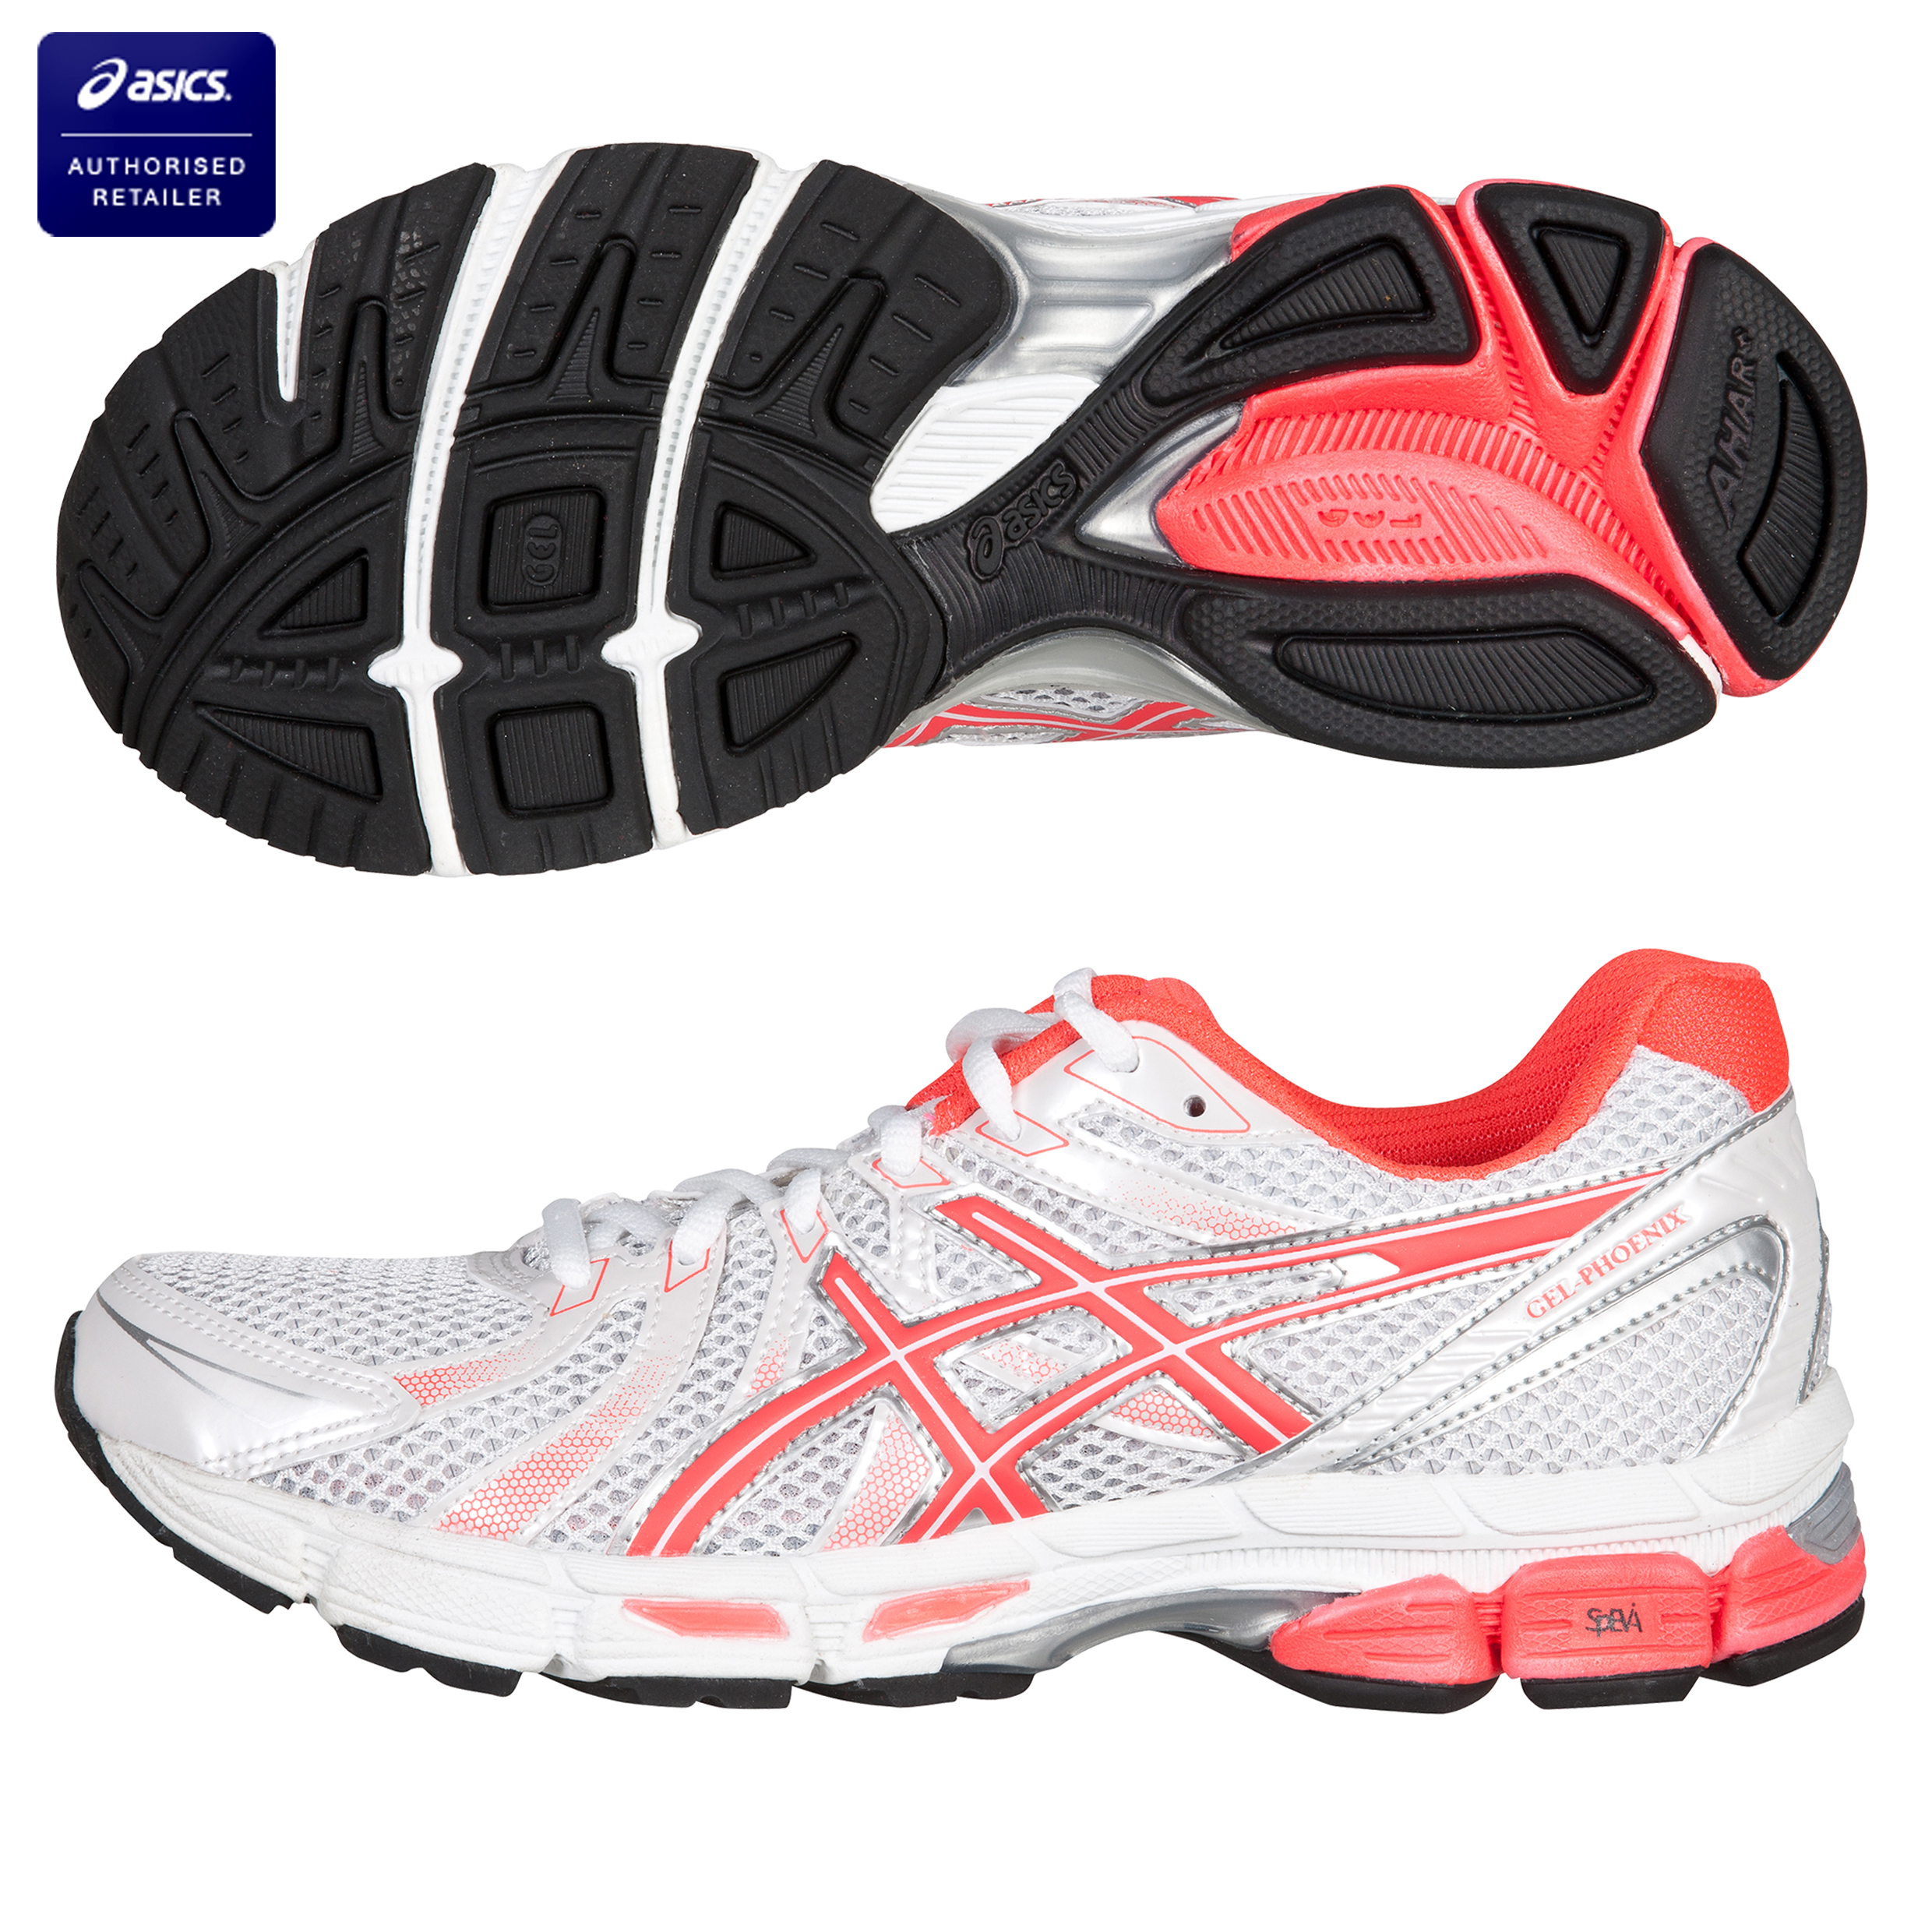 Asics Gel-Phoenix Trainer - White/Hot Pink/Silver - Womens